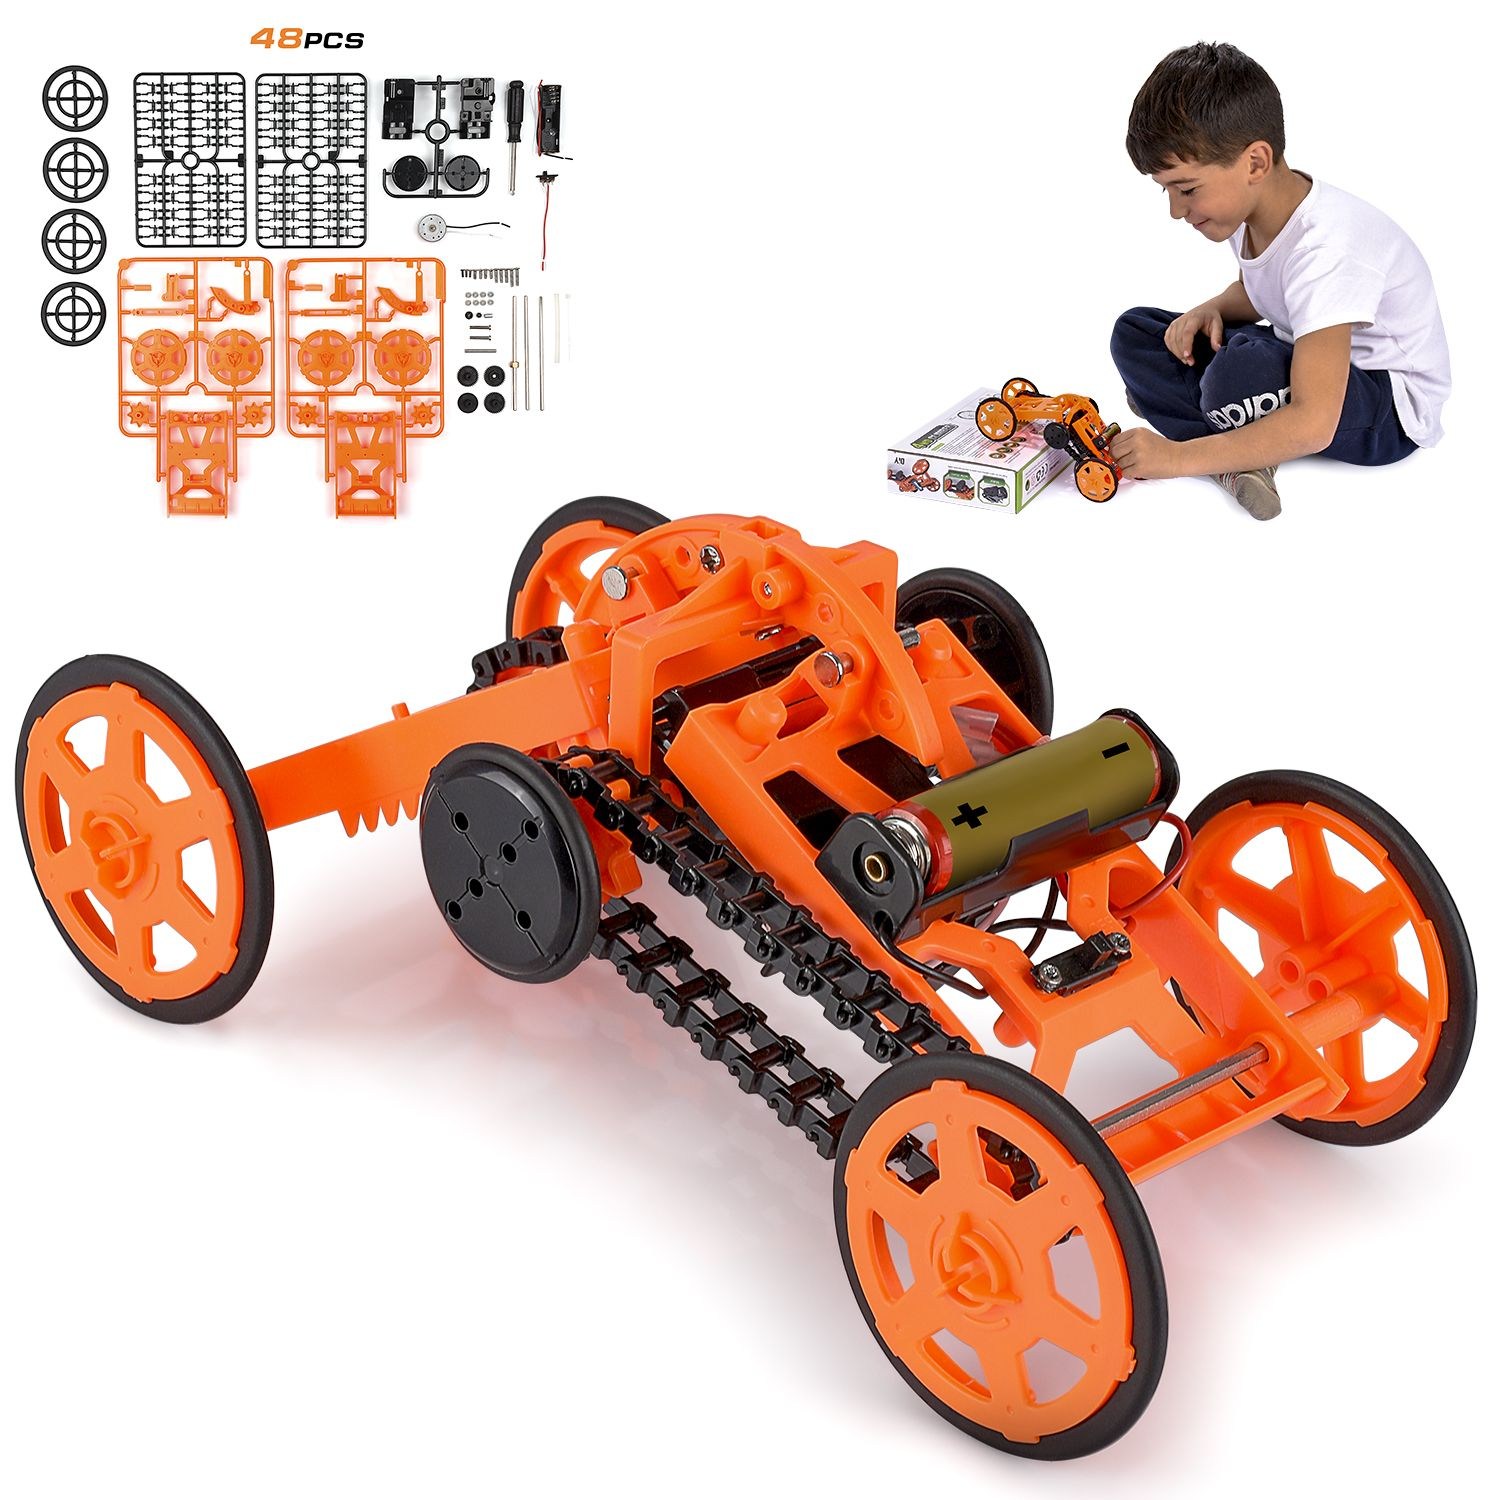 Engineering stem diy car assembly gift toy for boys kids